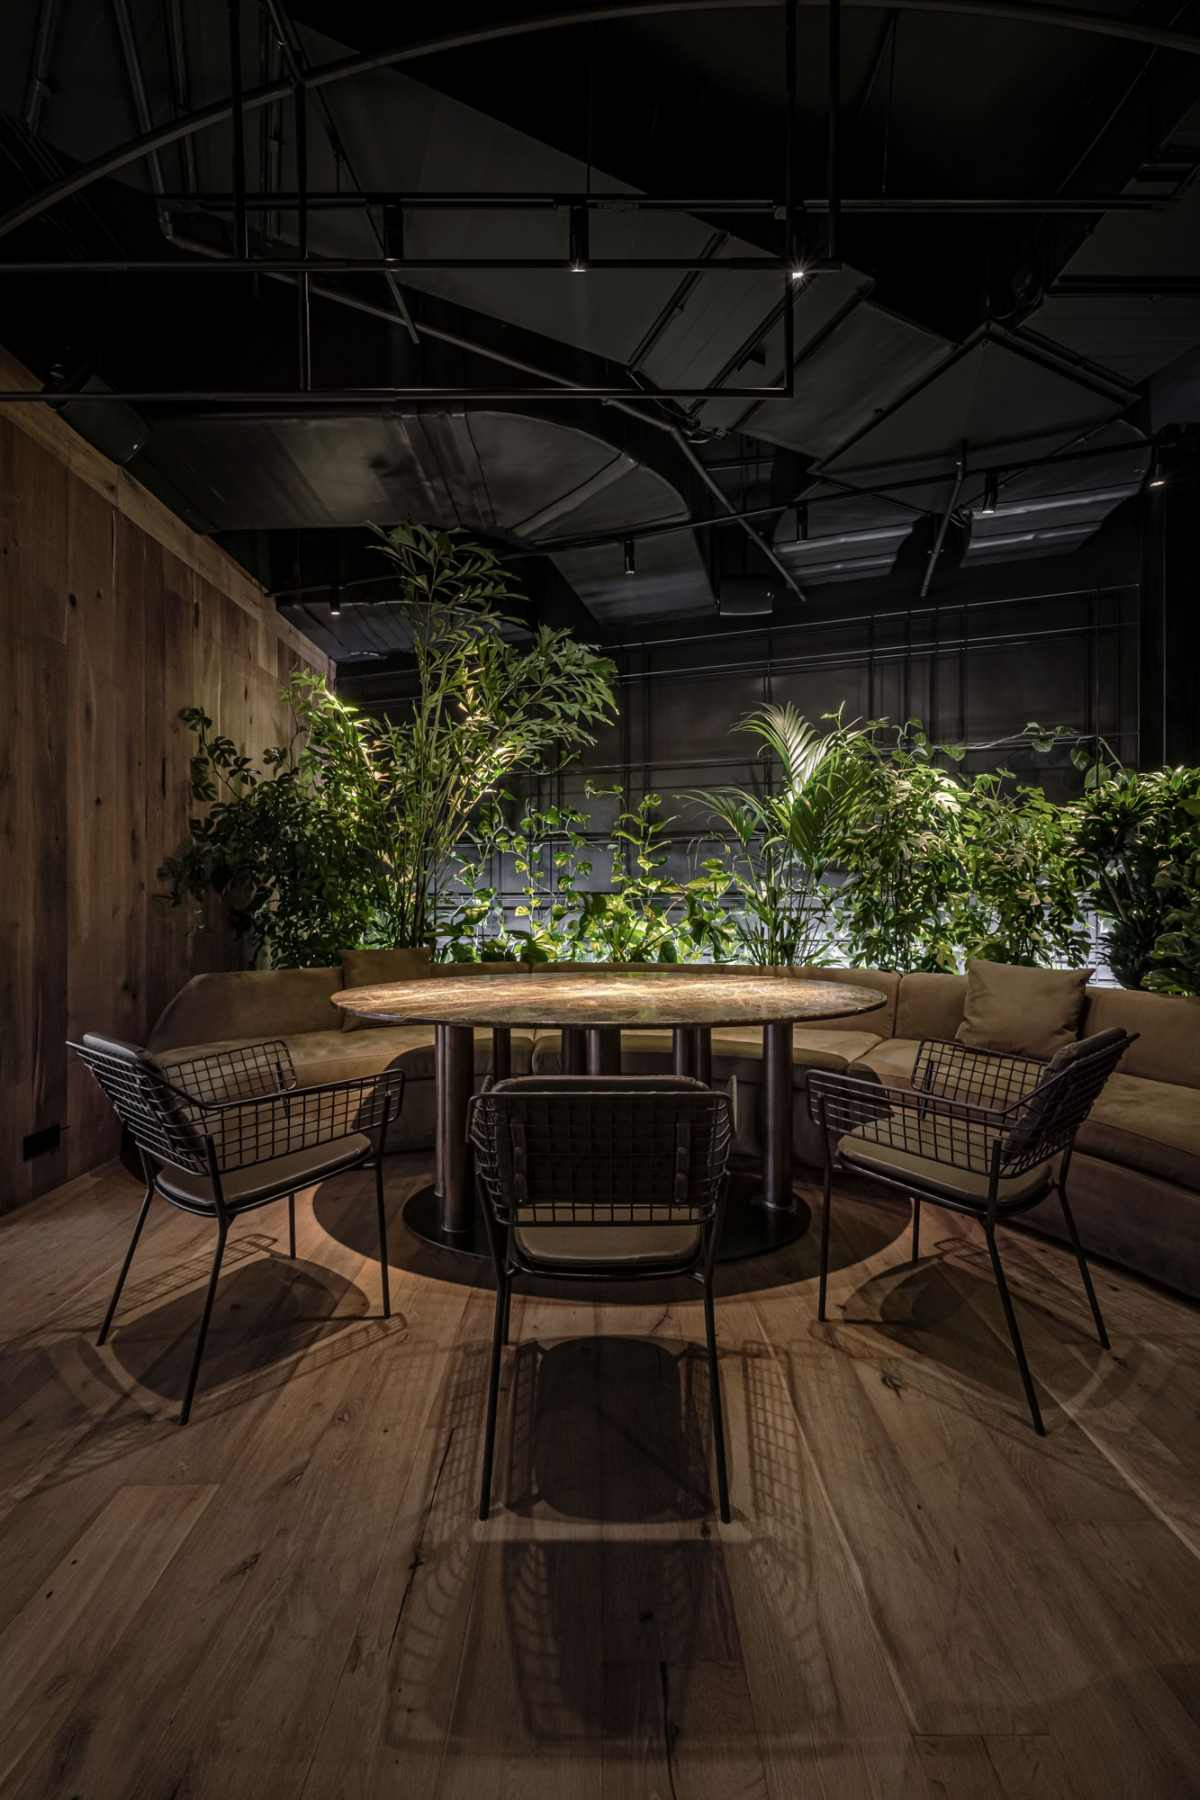 The Par Bar 3 Restaurant Brings Greenery Back To The Concrete Jungle In Kyiv